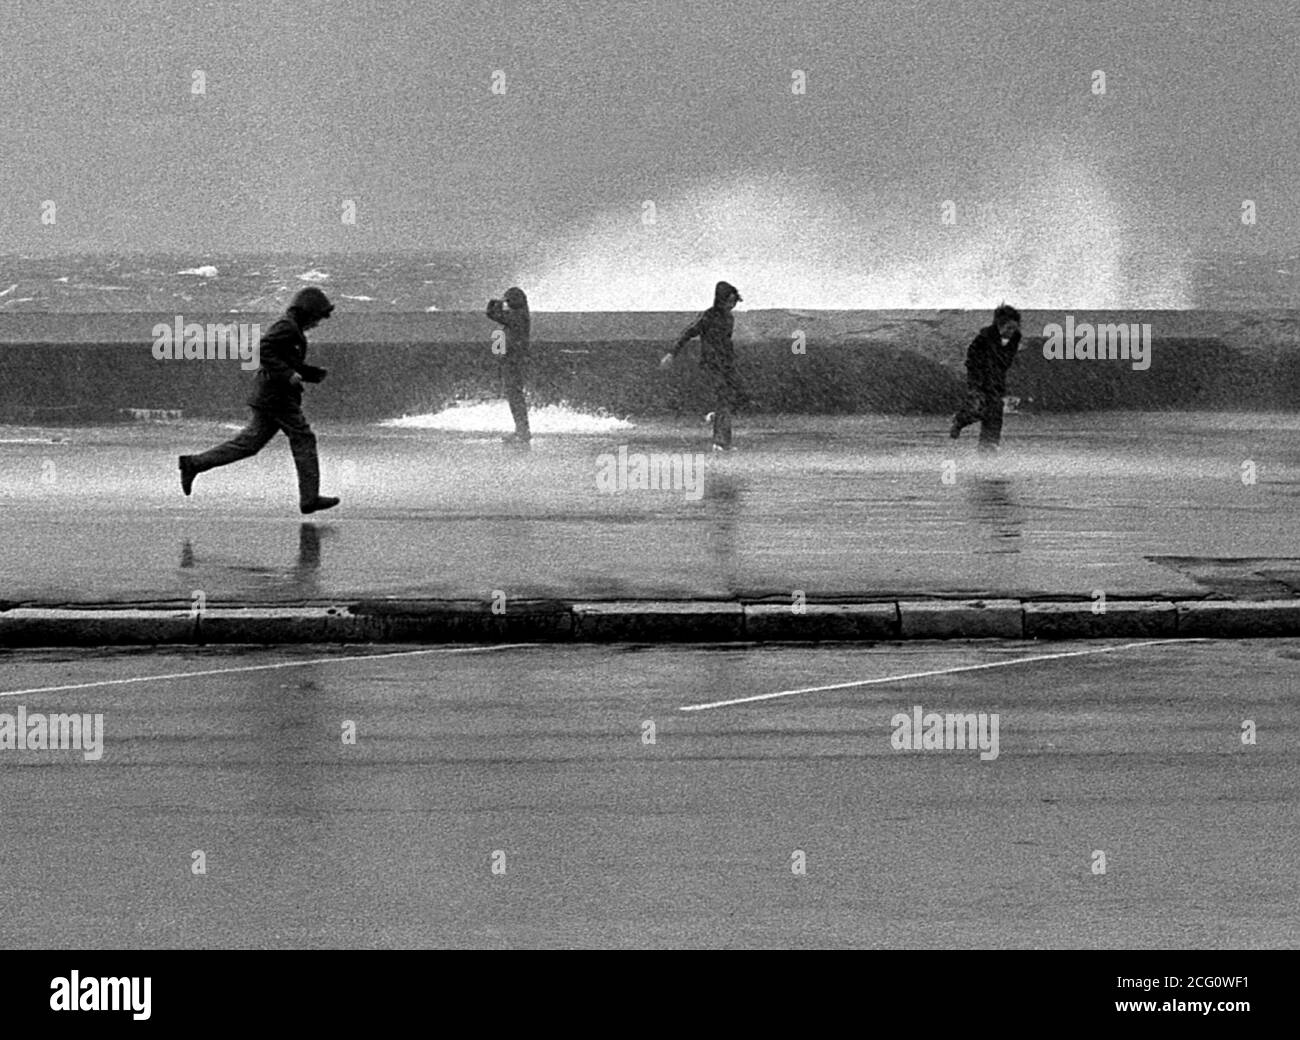 AJAXNETPHOTO. 1975. SOUTHSEA, ENGLAND. - SPRAY DODGERS - YOUNGSTERS DODGING THE SPRAY AS SEAS CRASH OVER THE PARAPIT ALONG CLARENCE ESPLANADE DURING AN AUTUMNAL GALE.PHOTO:JONATHAN EASTLAND/AJAX REF:75046 5 60 Stock Photo